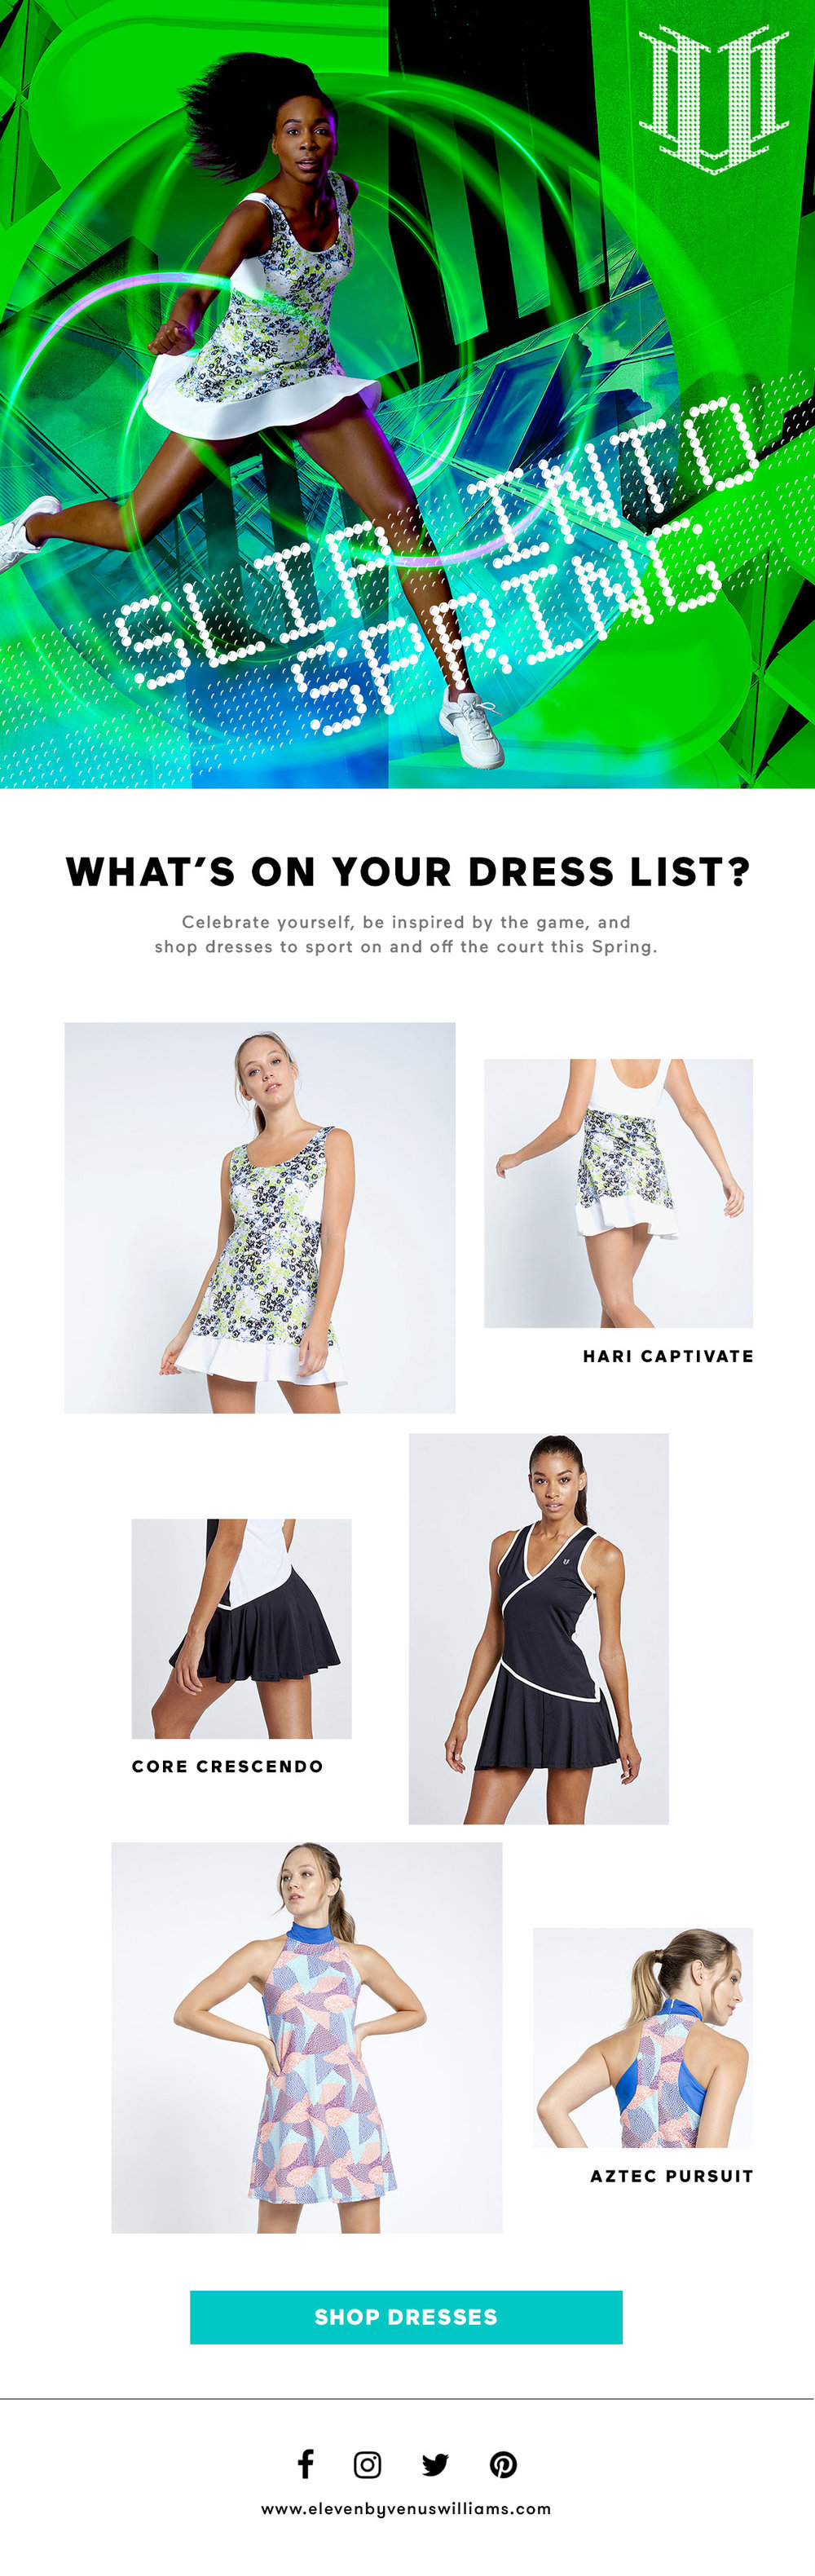 Tennis Dress Email Blast